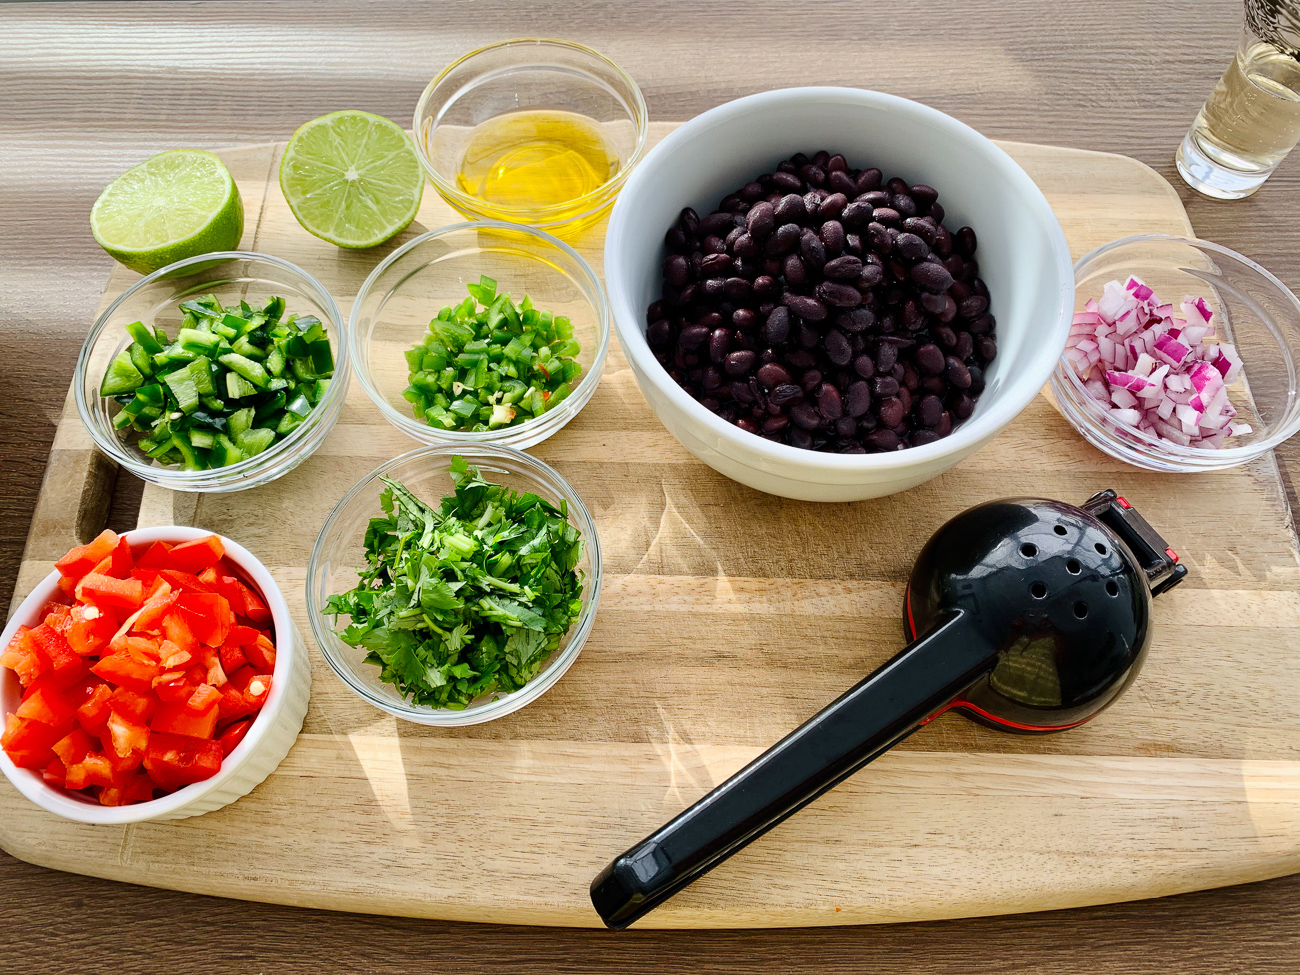 INGREDIENTS BLACK BEAN SALAD FOR TACOS